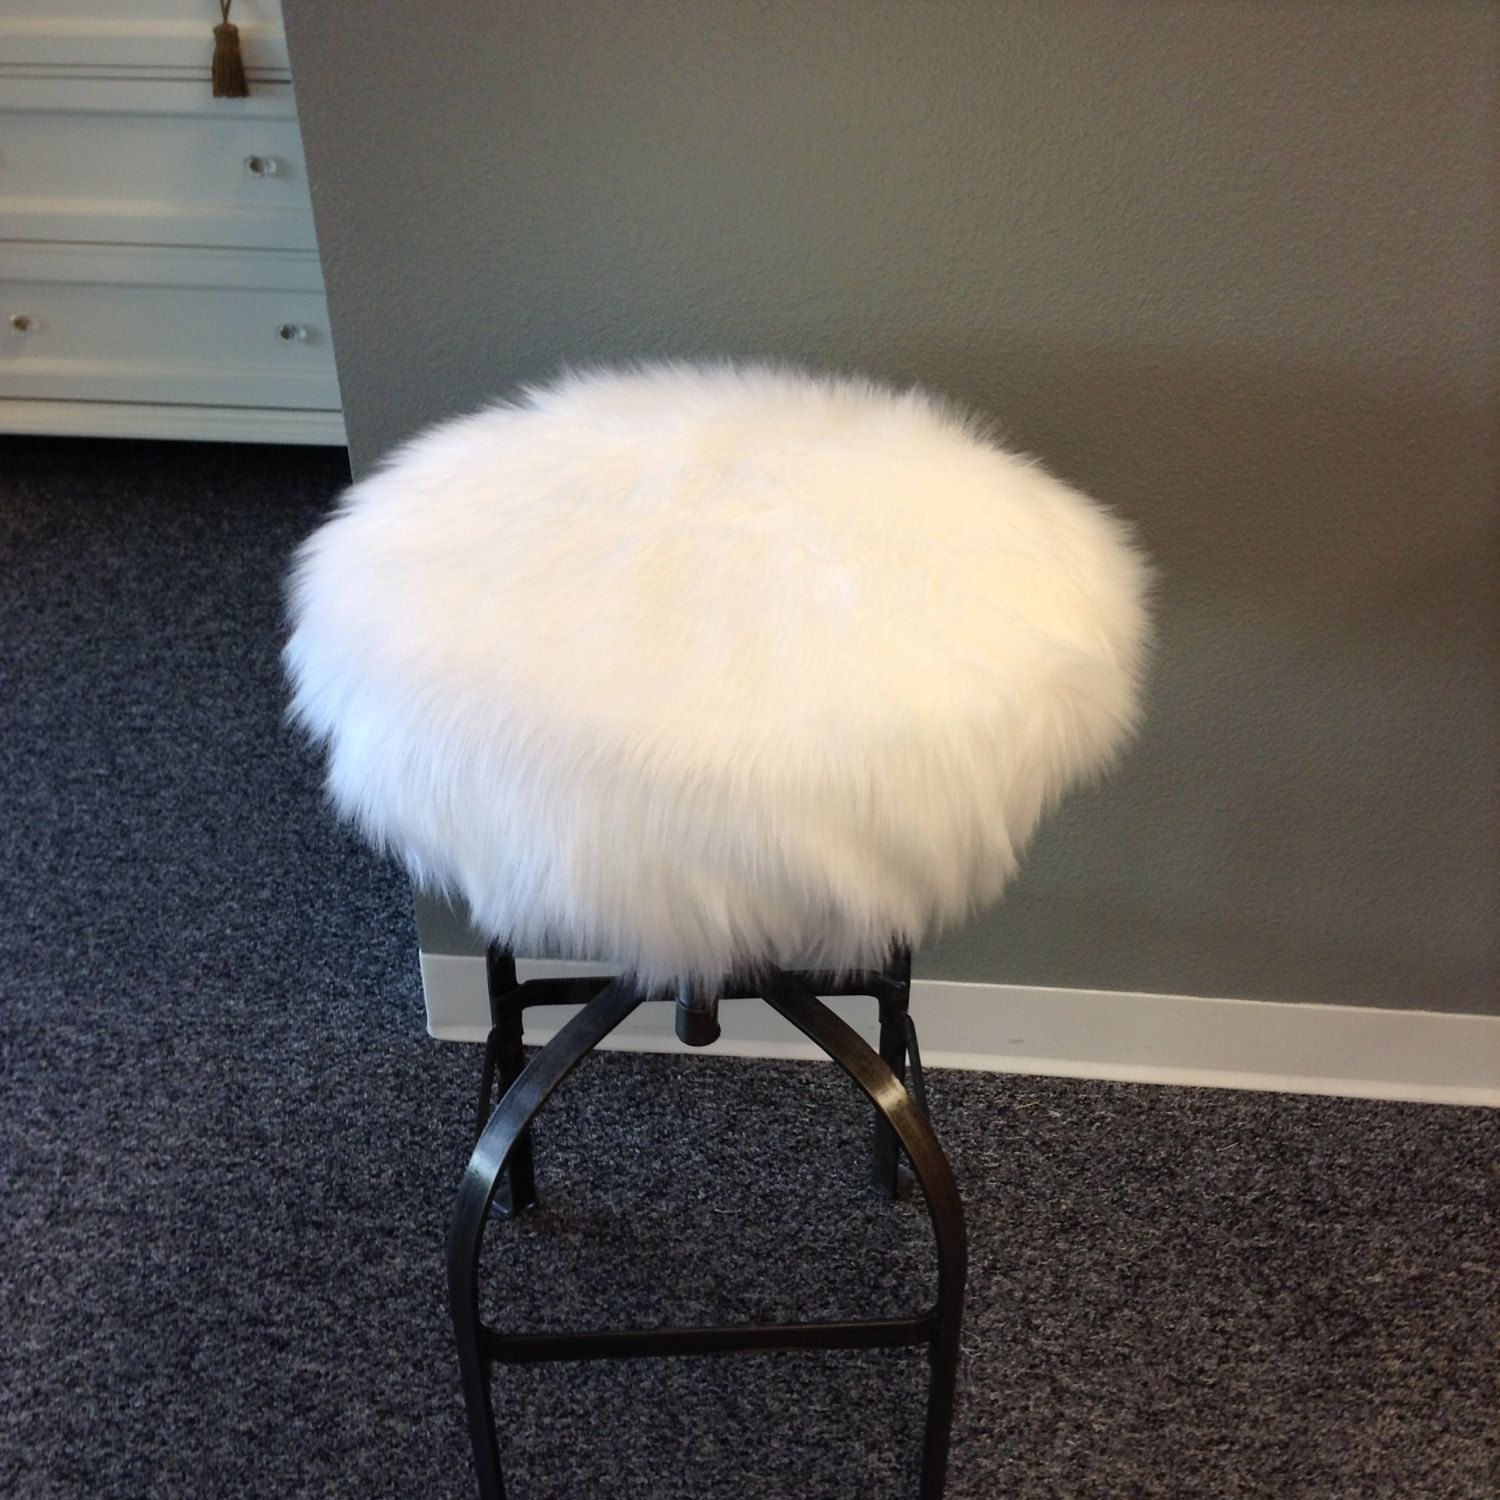 Faux Fur Luxury Shag Round Barstool Cover Kitchen Counter Stool Seat Cover Vanity Stool Cover Removable White Faux Fur Cover Cover Only Bar Stool Covers Round Bar Stools Stool Covers